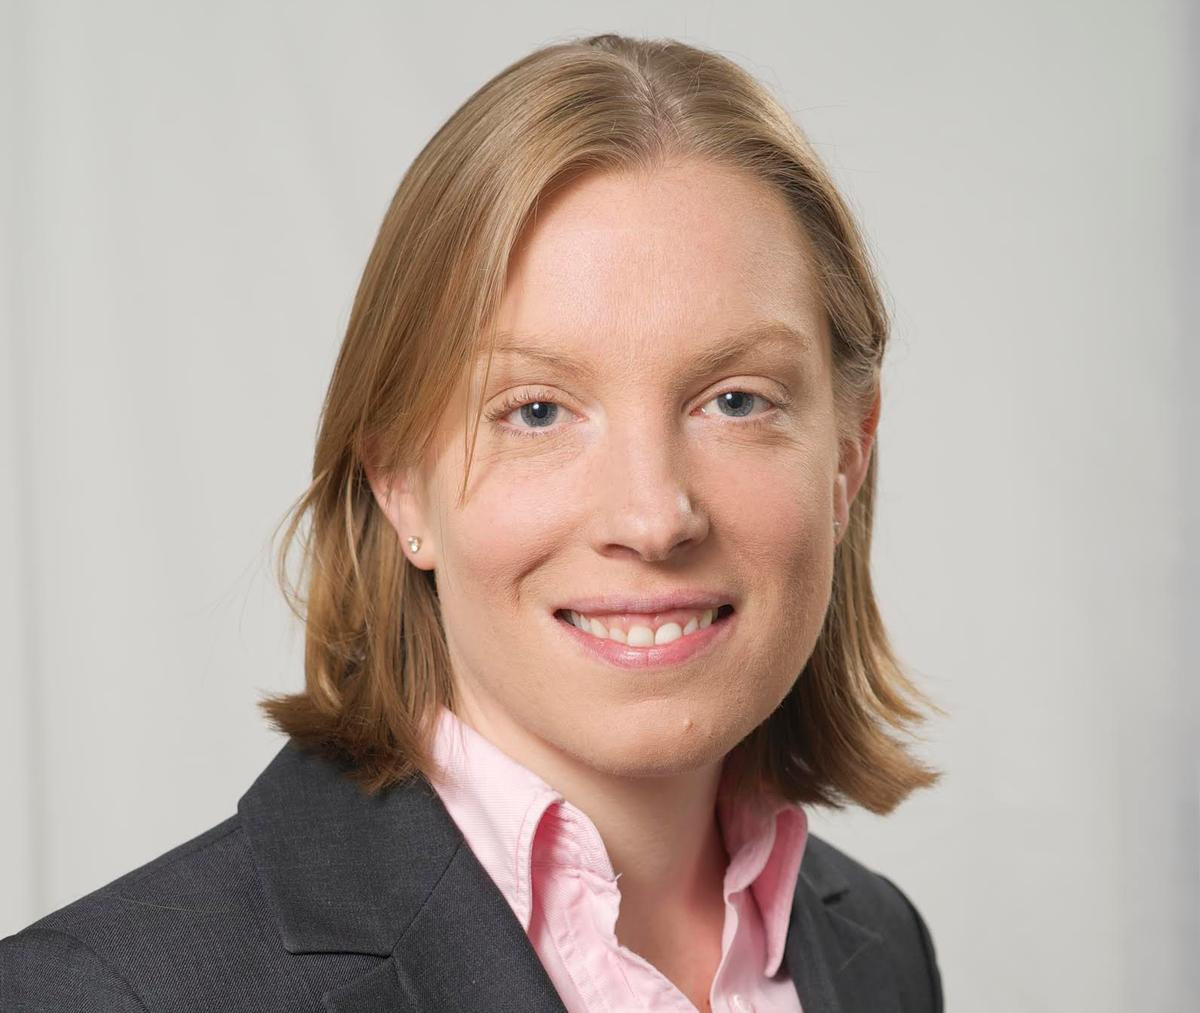 Tourism minister Tracey Crouch said VisitEngland and VisitBritain must work towards the same goal to further grow the visitor economy